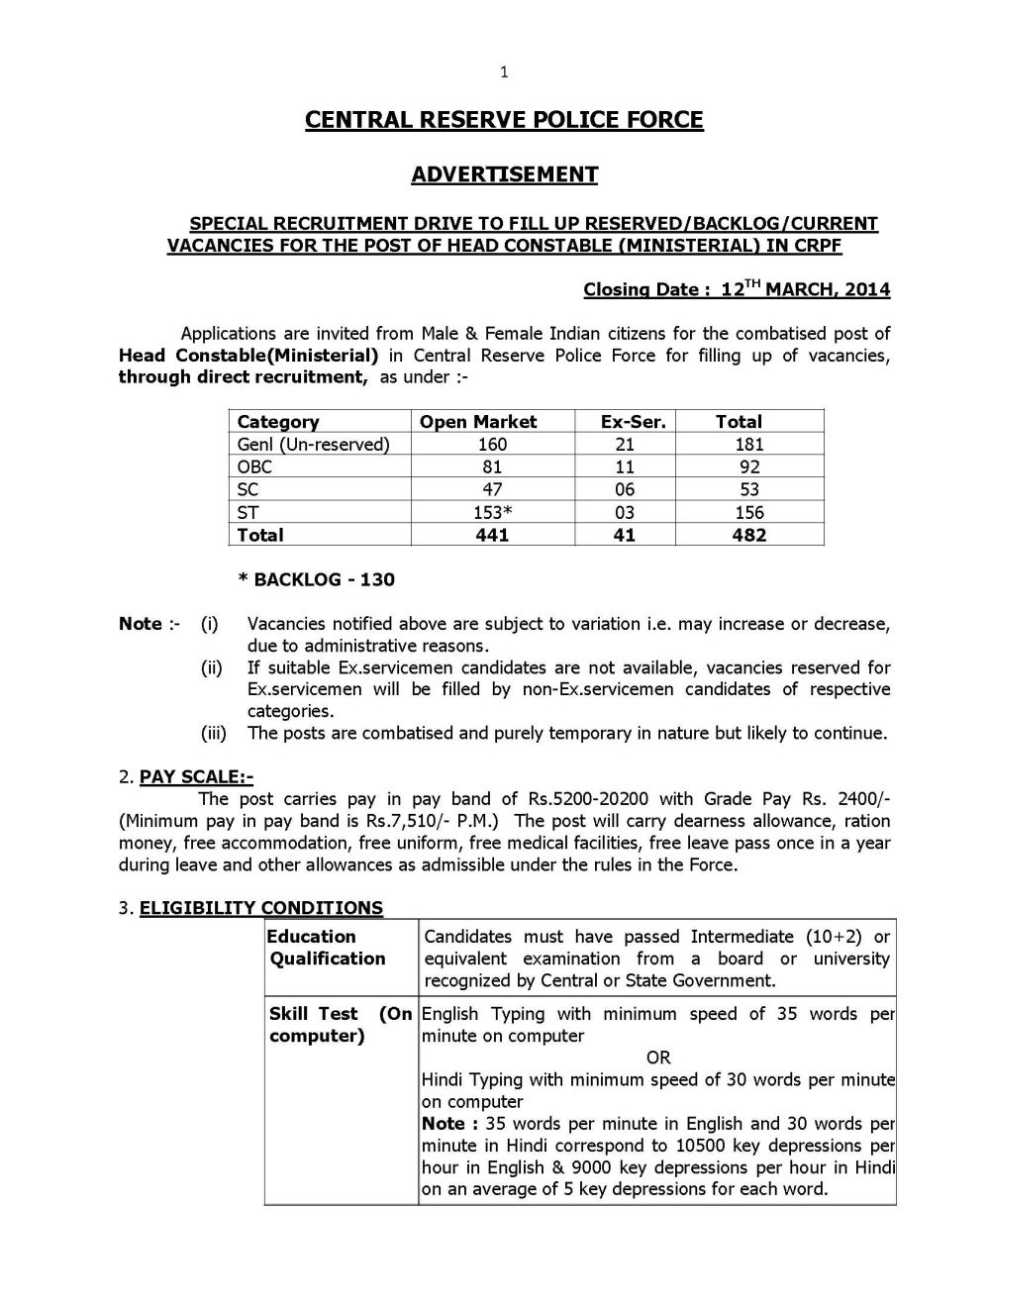 recruitment for head constable in crpf ssb cisf bsf. - 2018-2019 StudyChaCha